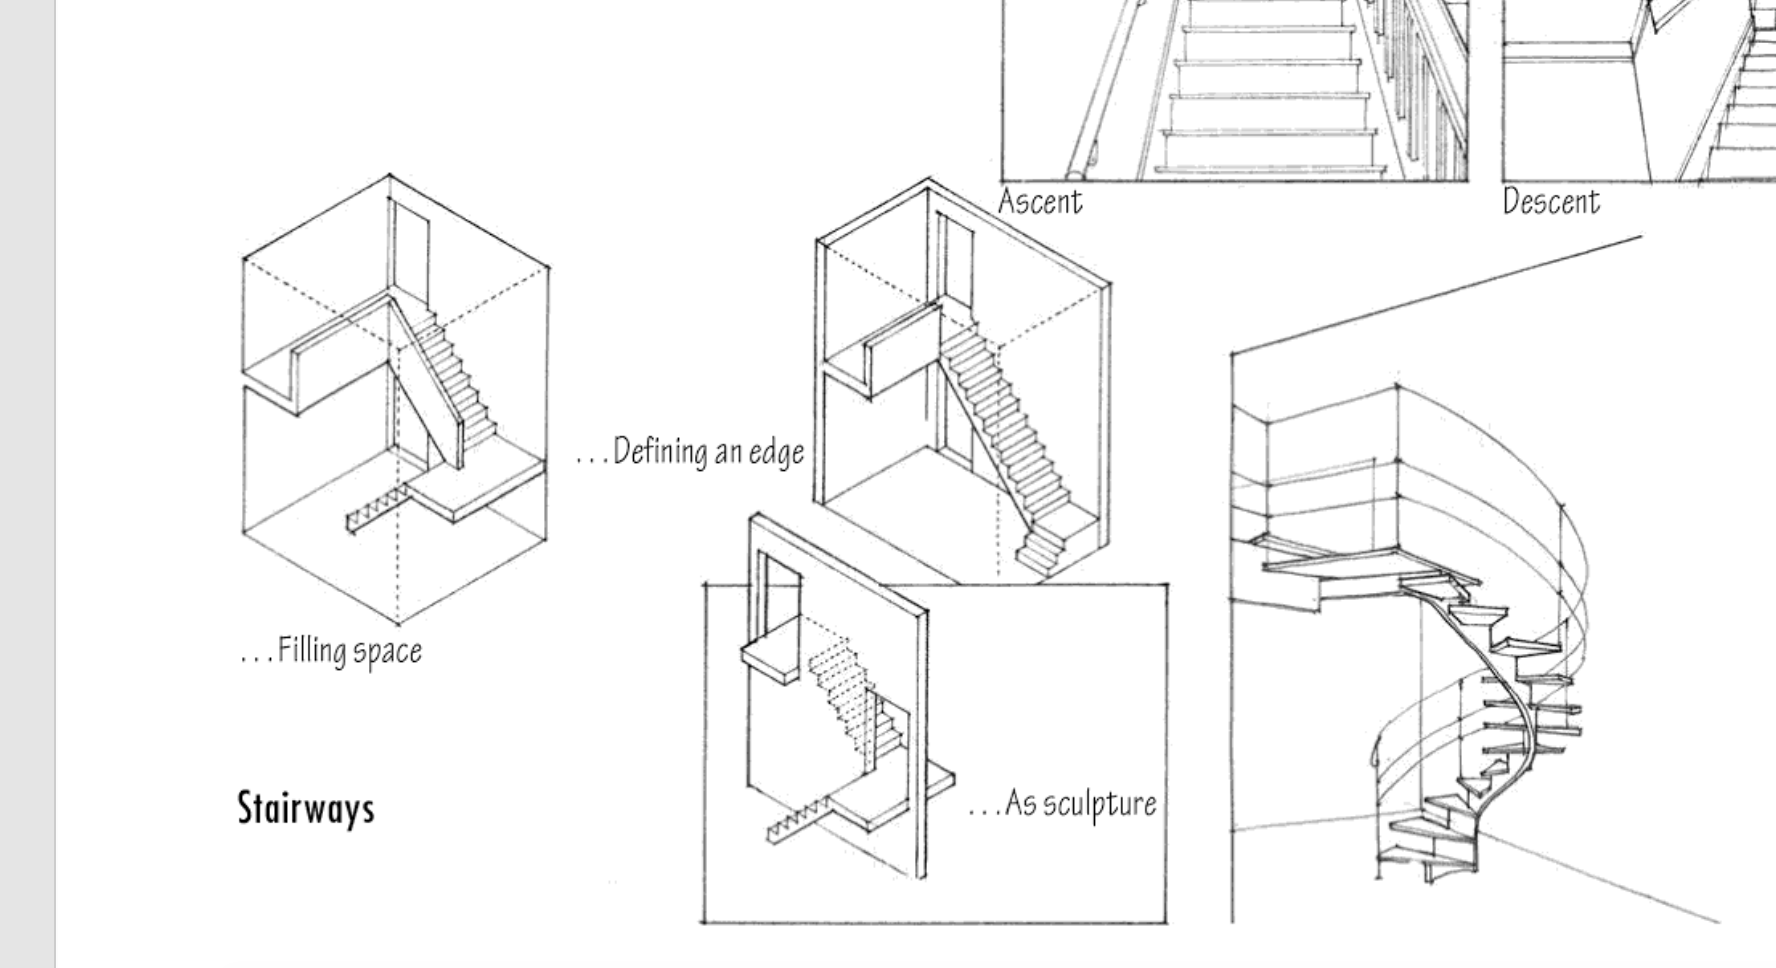 hight resolution of stair axon thesis stairs ladder staircases stairway ladders stairways